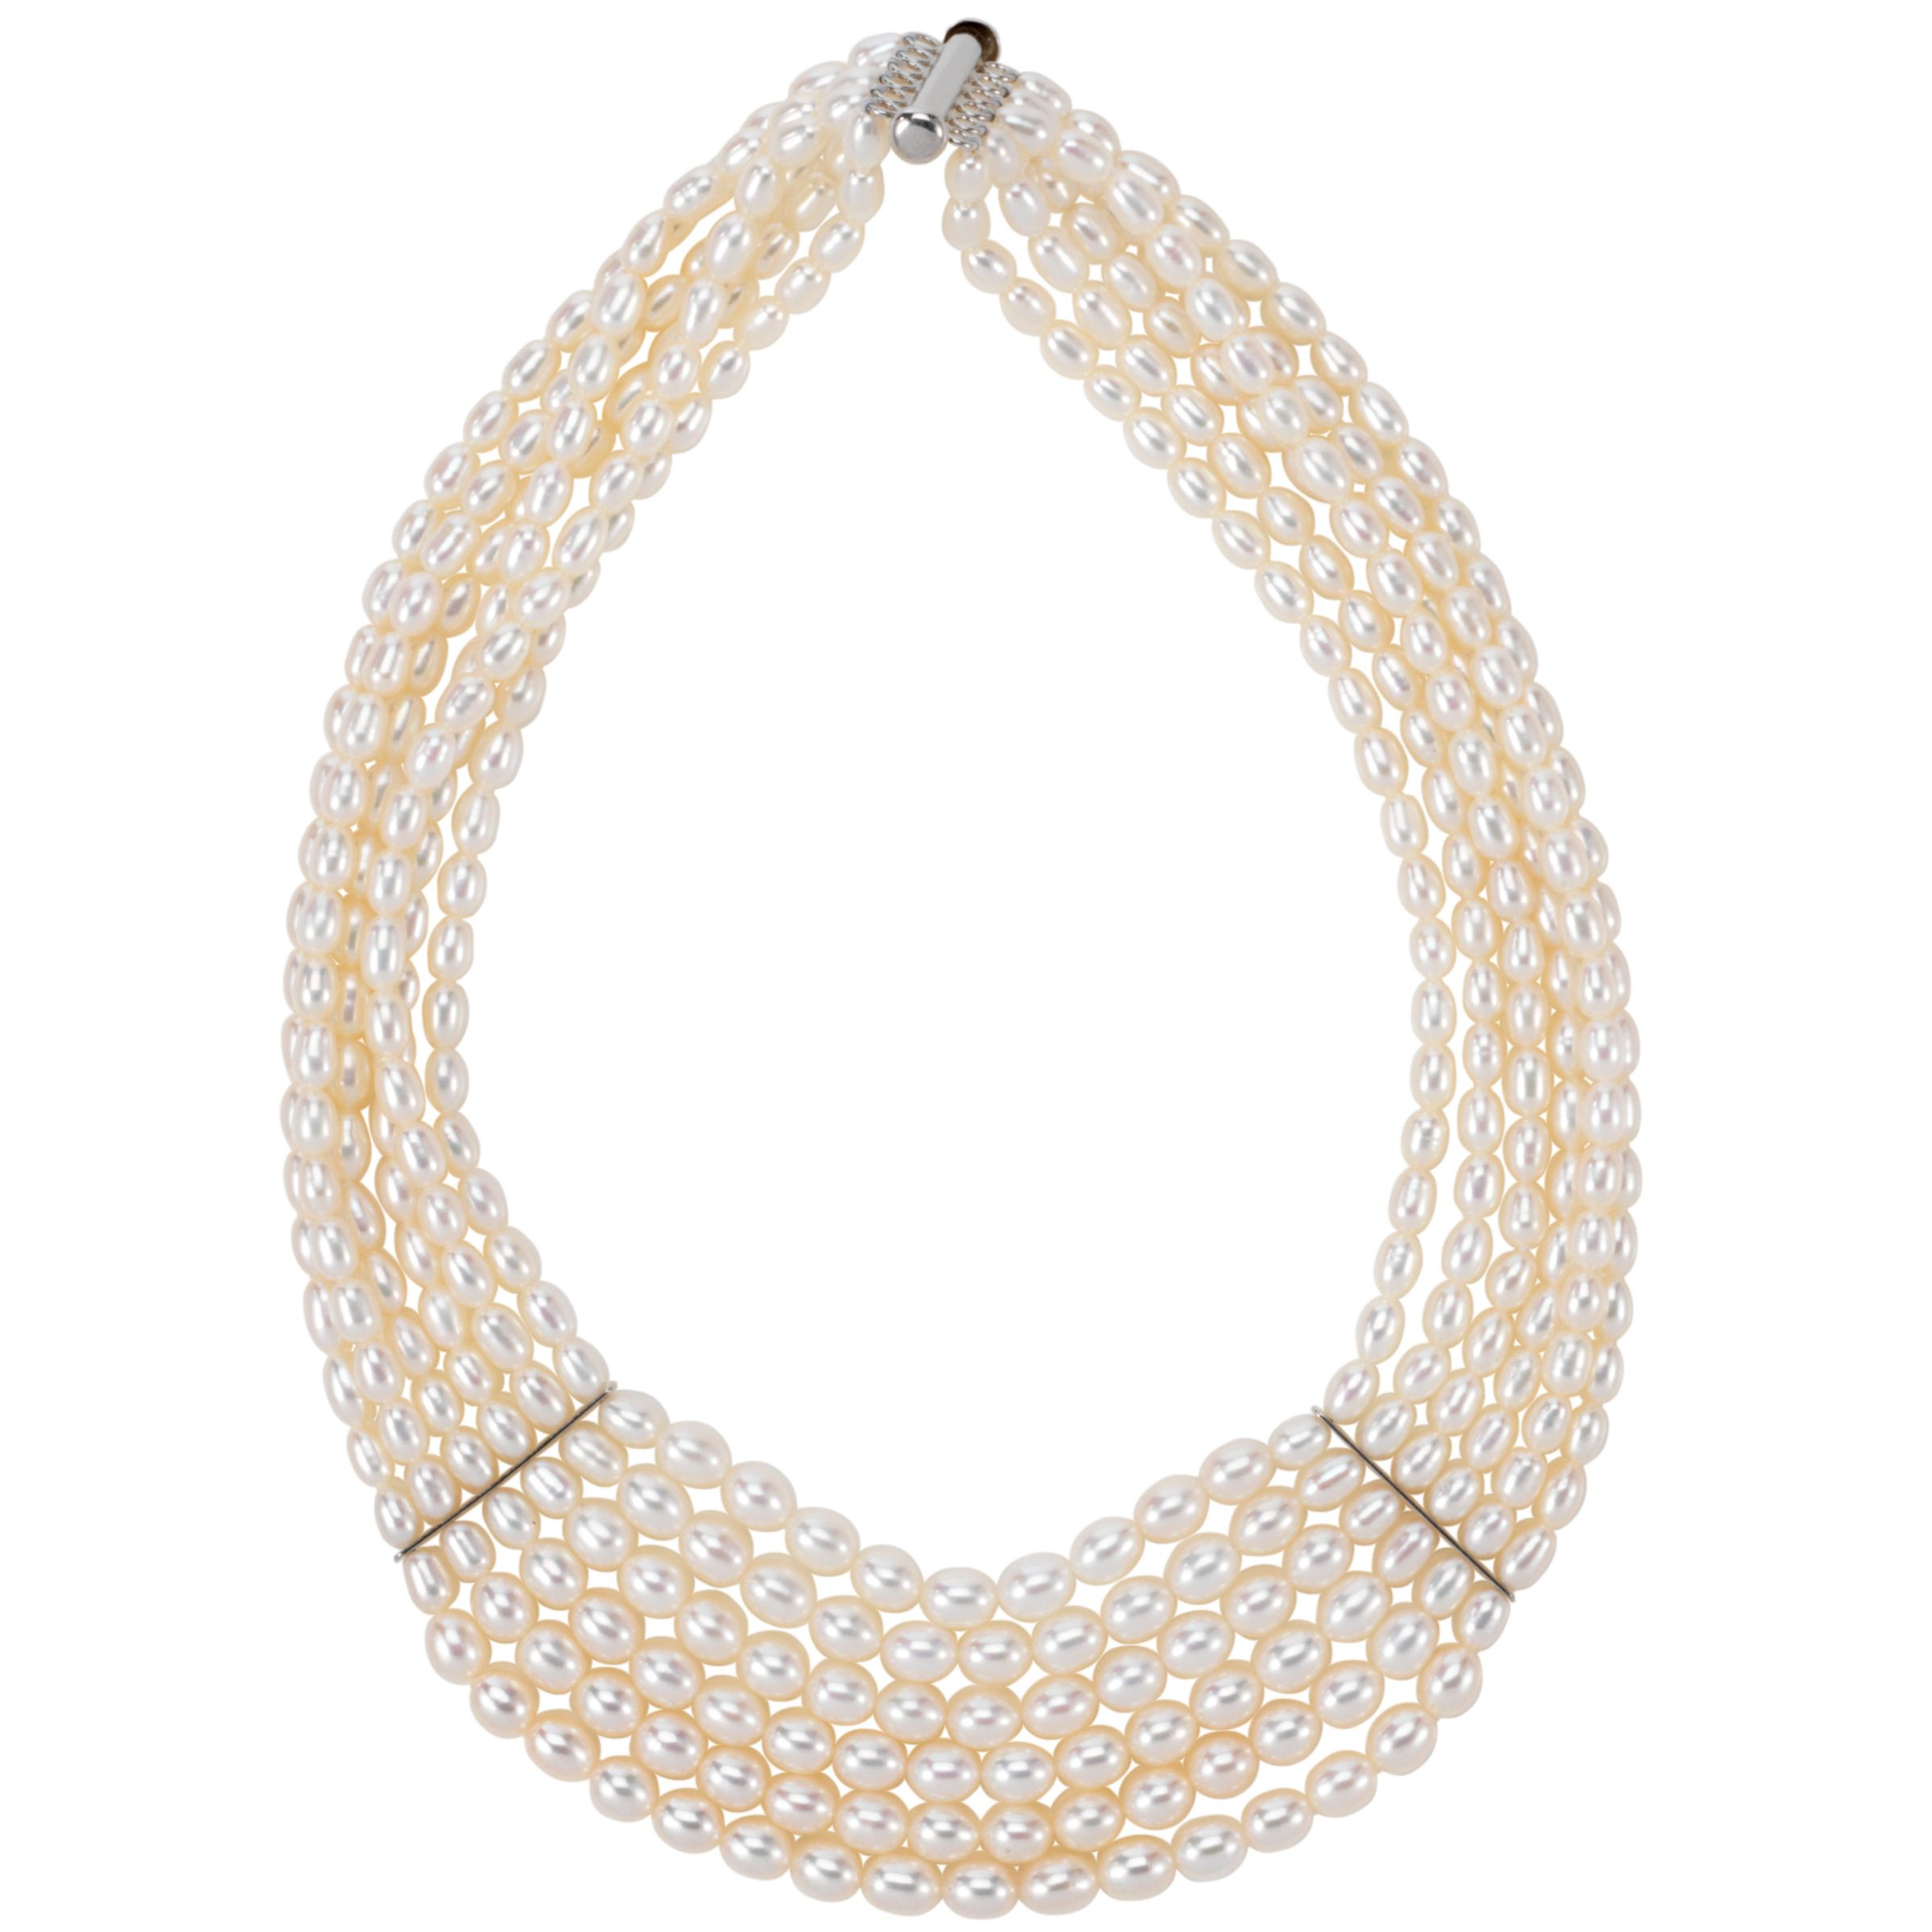 Lido Pearls 6 Row Classic White Pearl Necklace